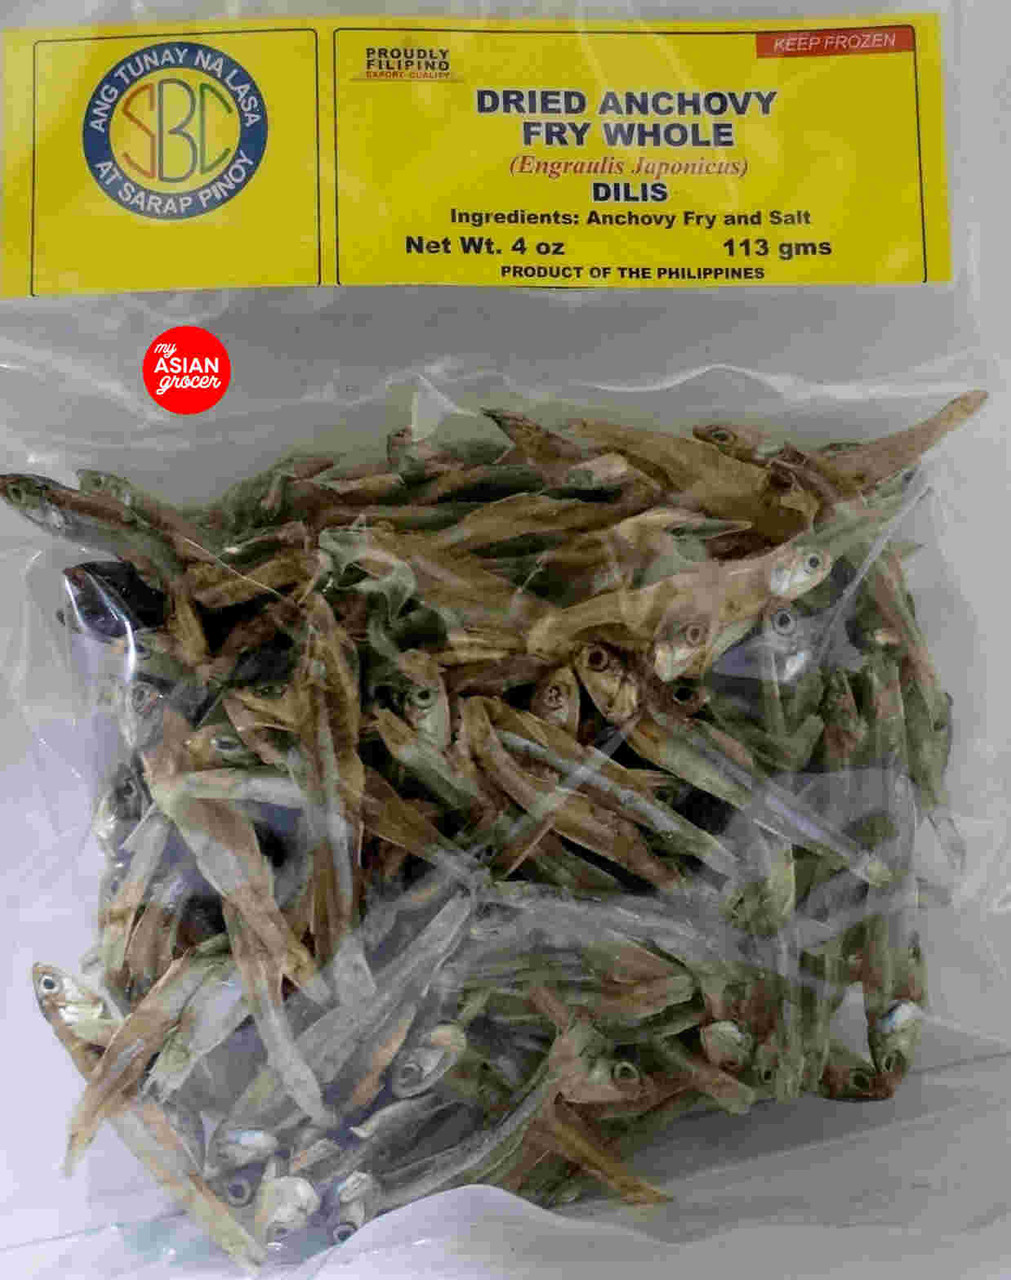 SBC Dried Anchovy Fry Whole Dilis 113g